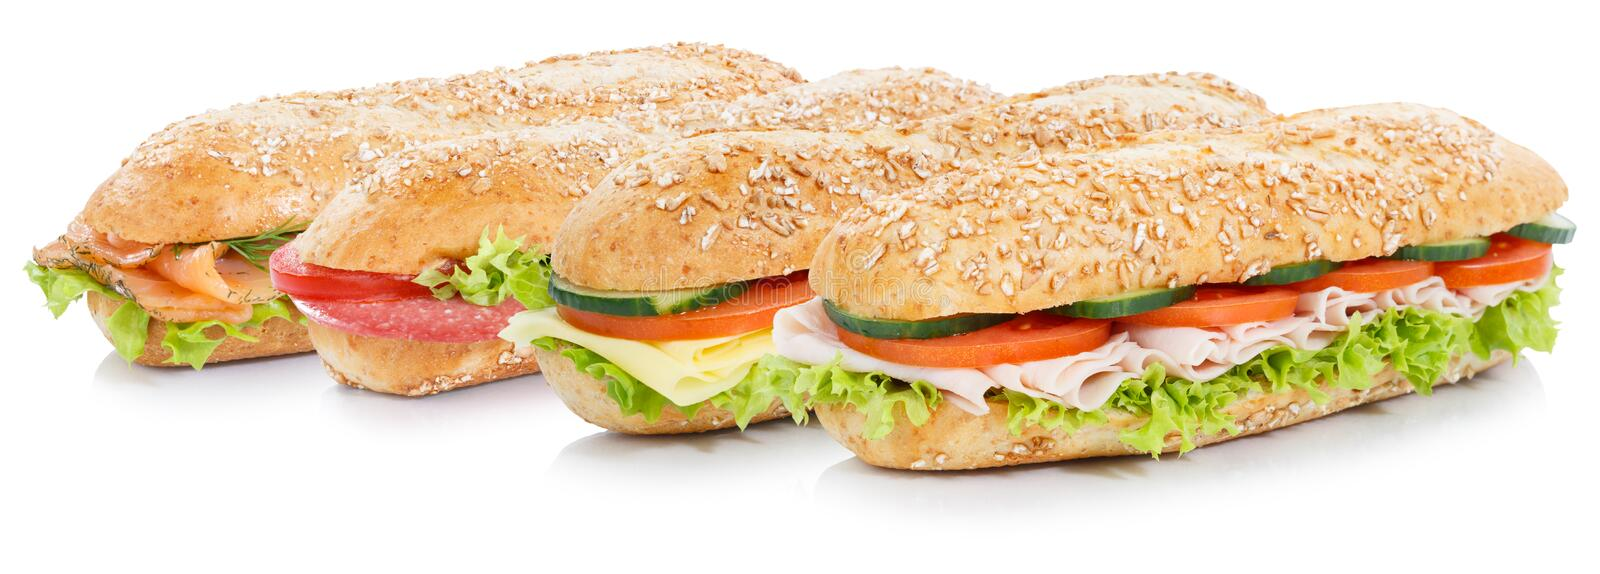 Sub sandwiches with salami ham cheese salmon fish whole grains i. Solated on a white background royalty free stock photos